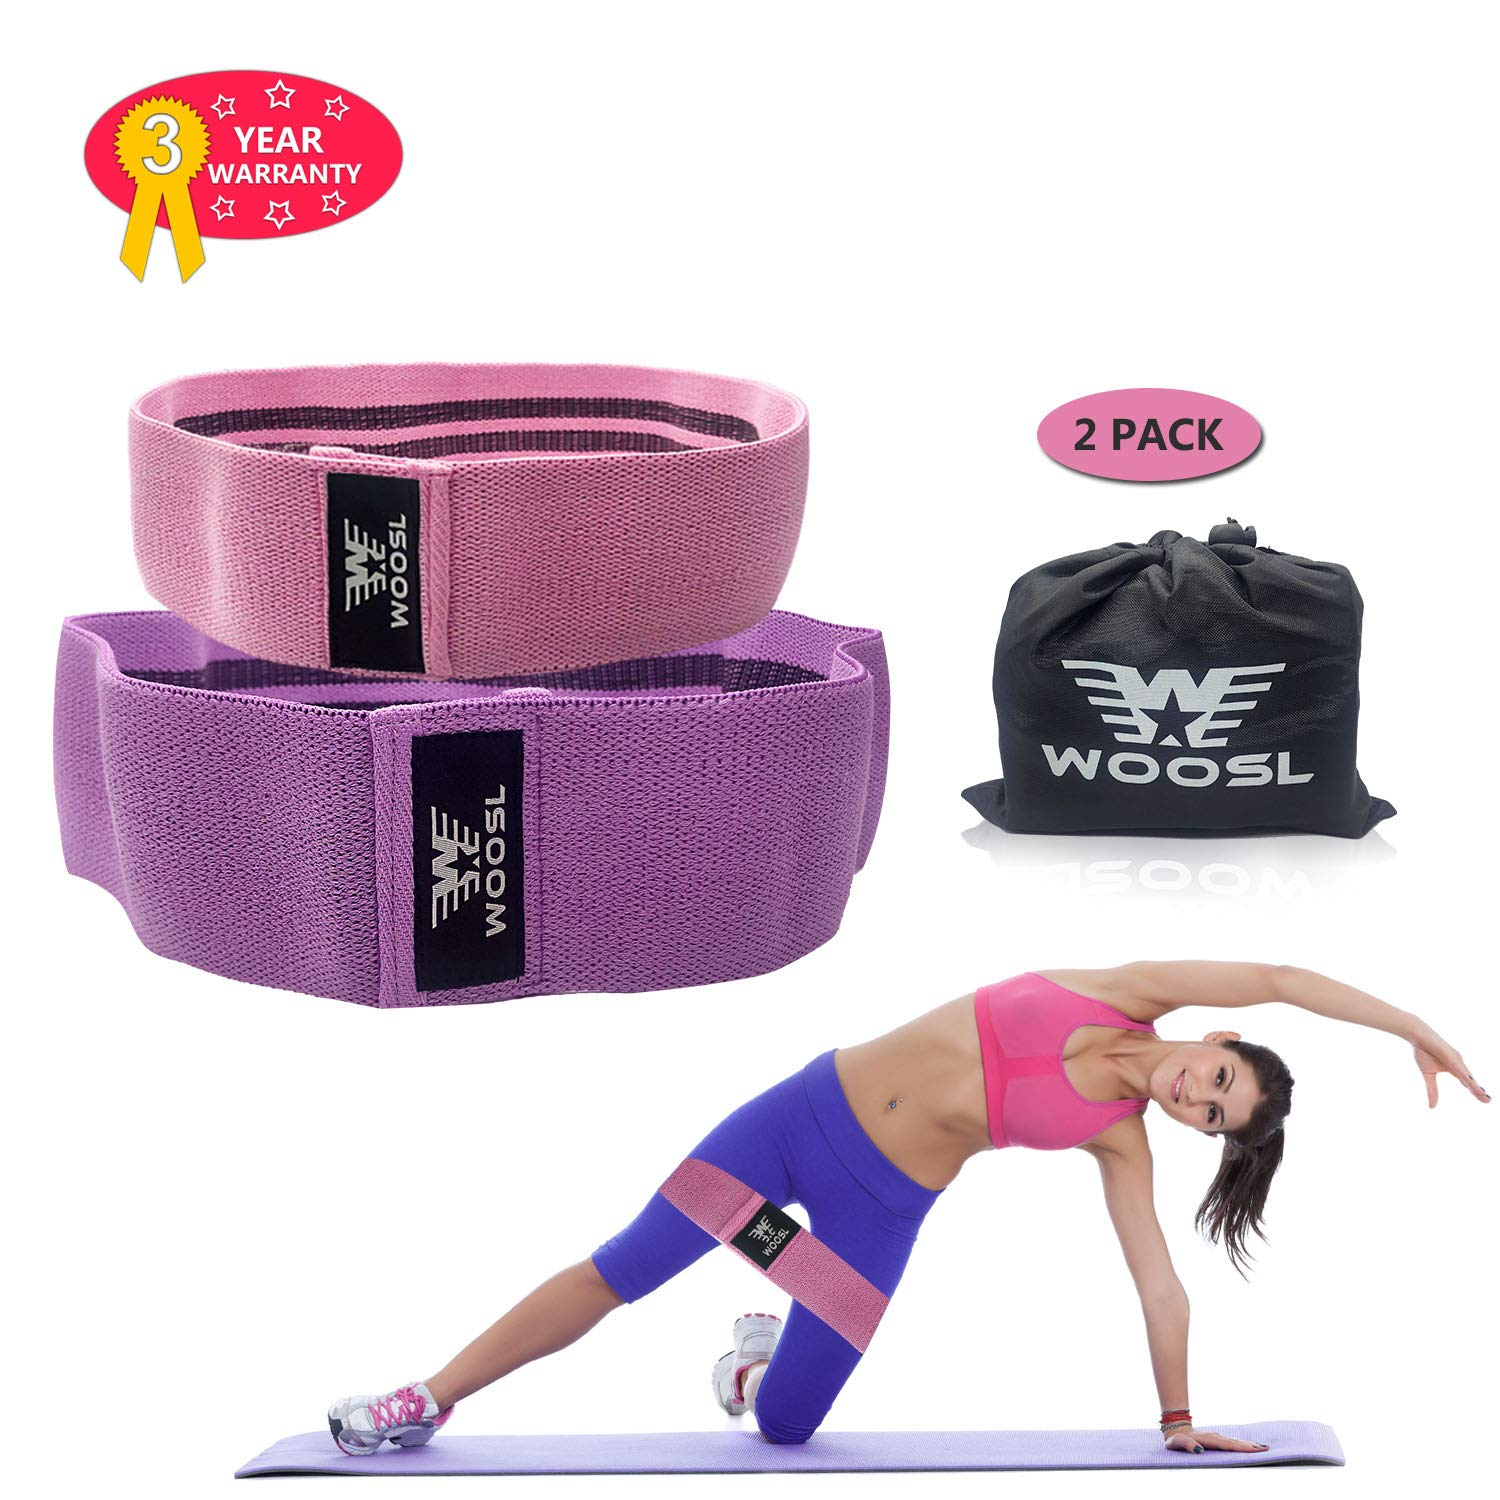 WOOSL Resistance Exercise Bands for Legs and Butt, Hip Bands Booty Bands Wide Workout Bands Resistance Loop Bands Anti Slip Circle Fitness Band Elastic Sports Bands